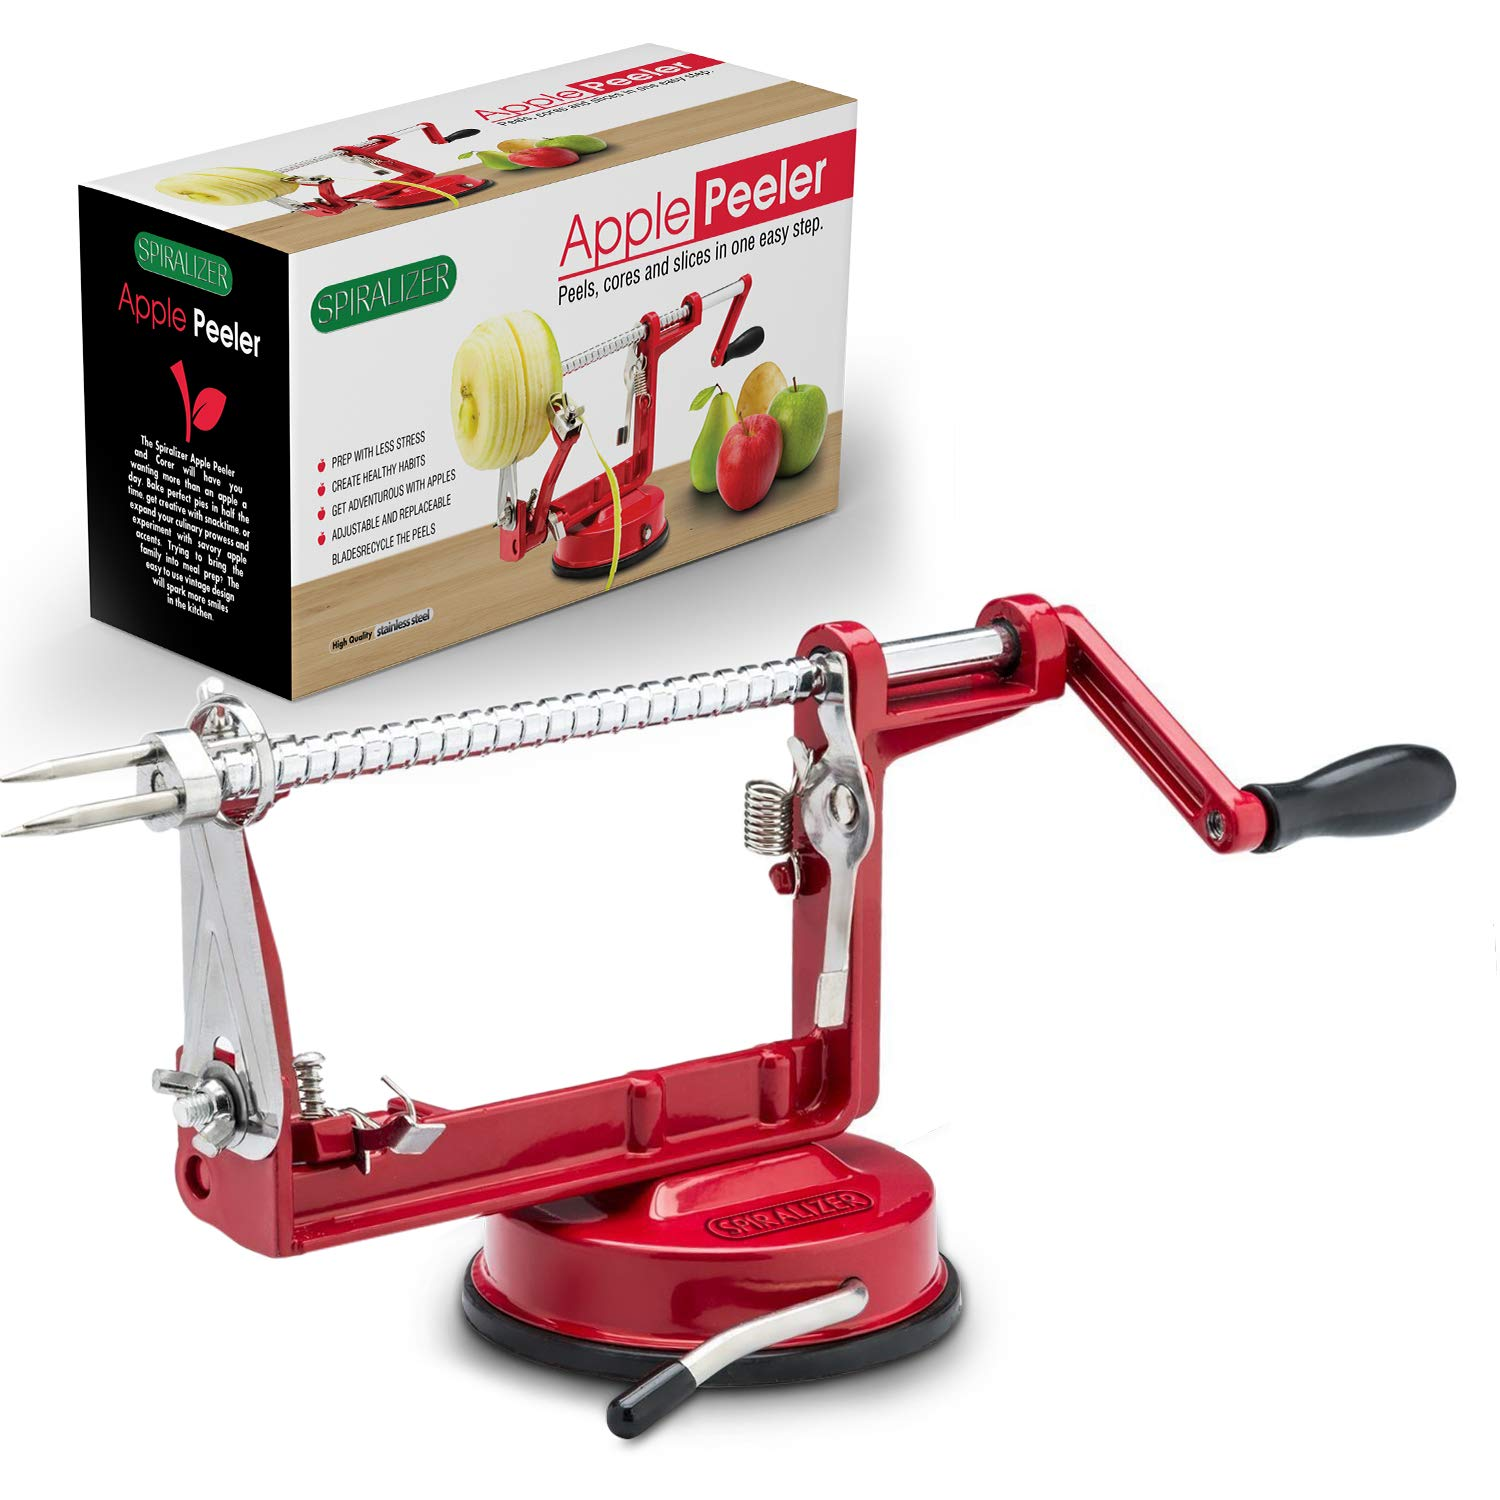 Cast Magnesium Apple/Potato Peeler Corer by Spiralizer, Durable Heavy Duty Die Cast Magnesium Alloy Peelers by Spiralizer